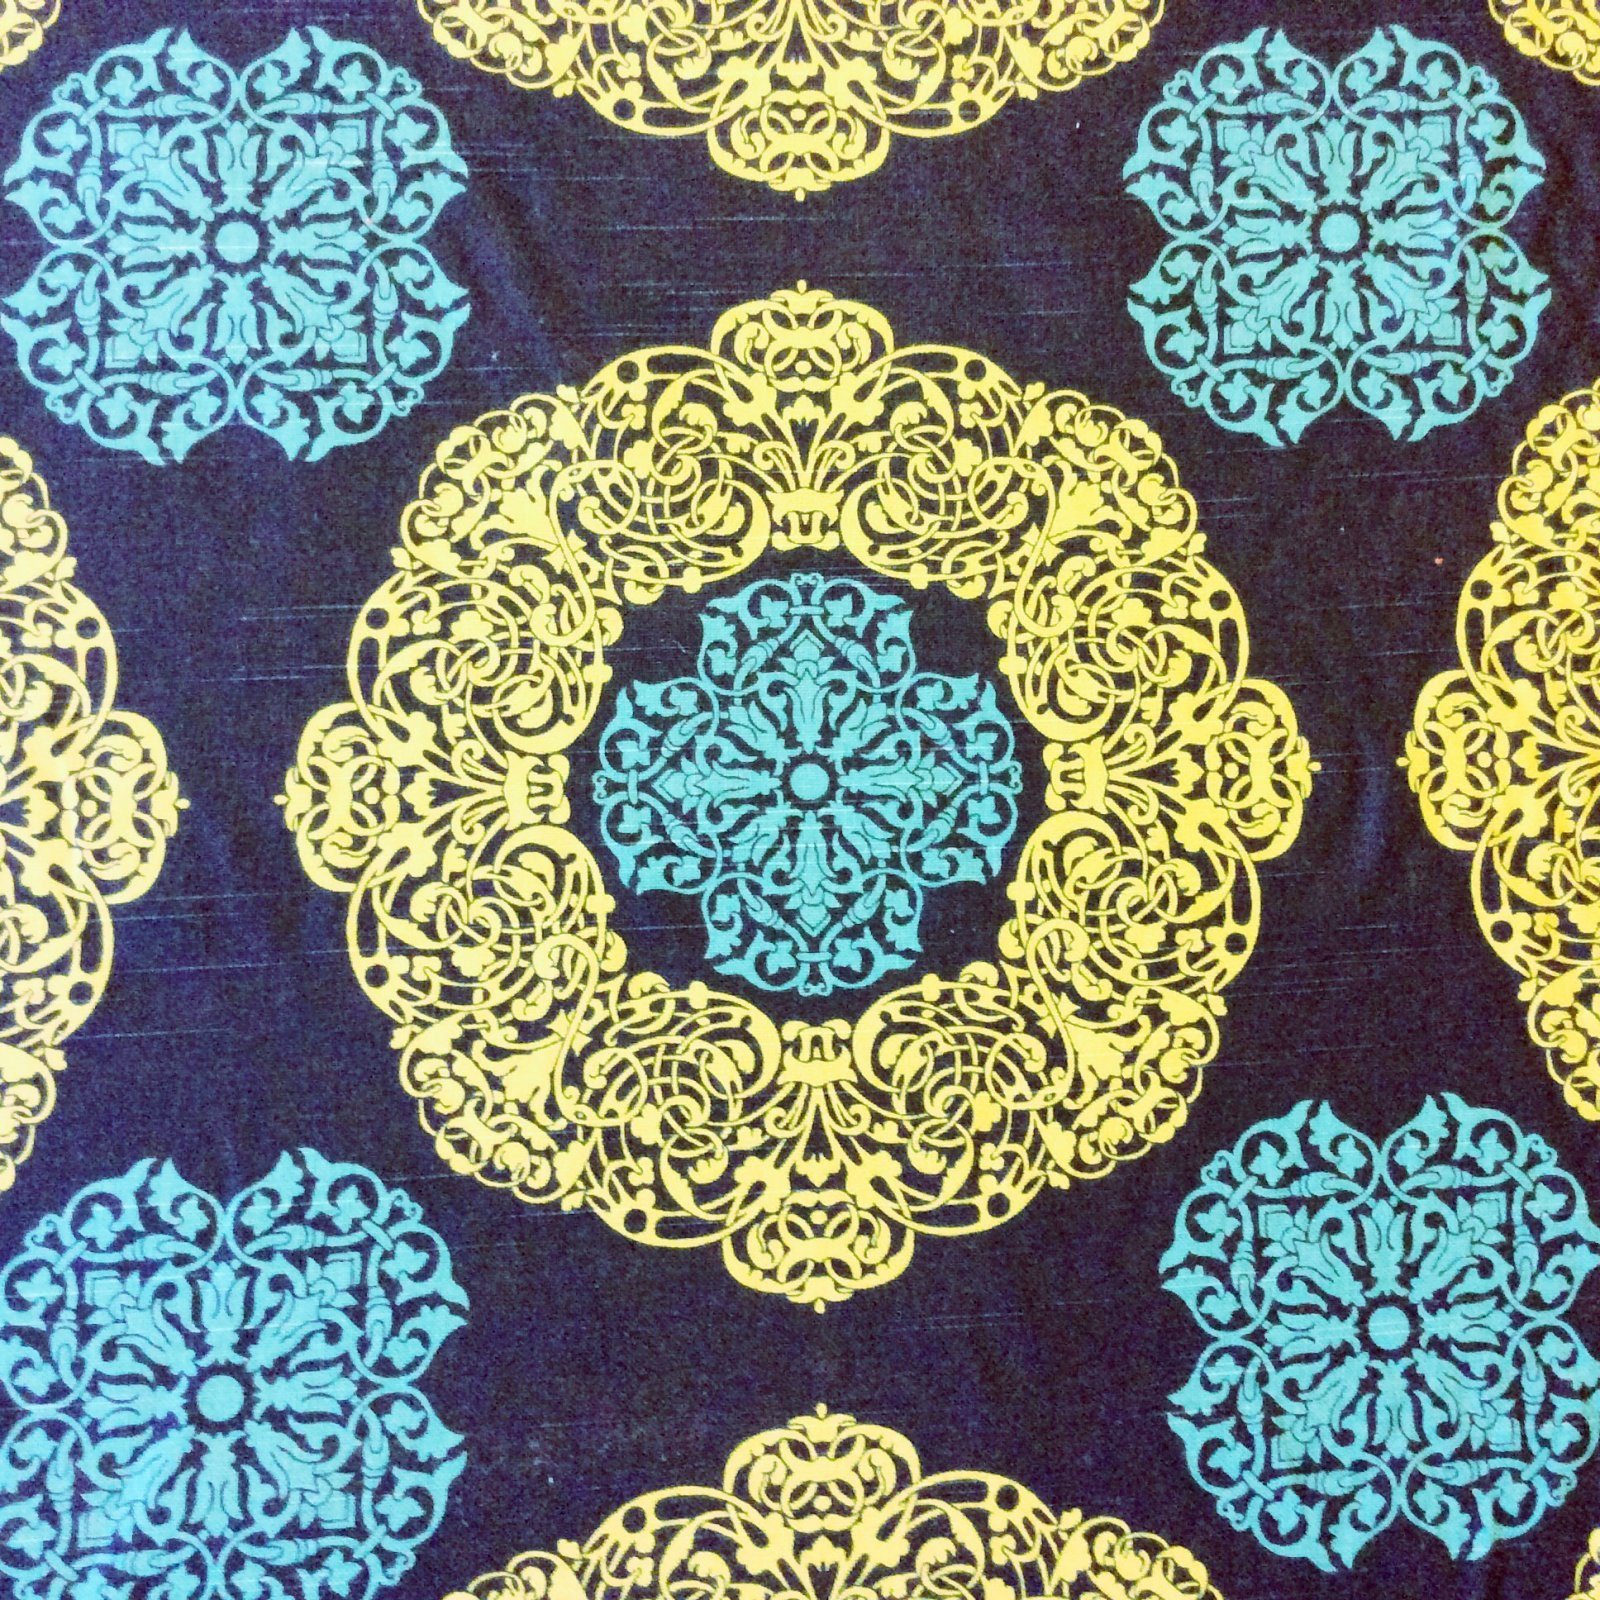 LDSO529 Blue & Green Navy Geometric Medallion Drapery Upholstery Home Decor Fabric Surburban Home Duralee Soul 72080-41